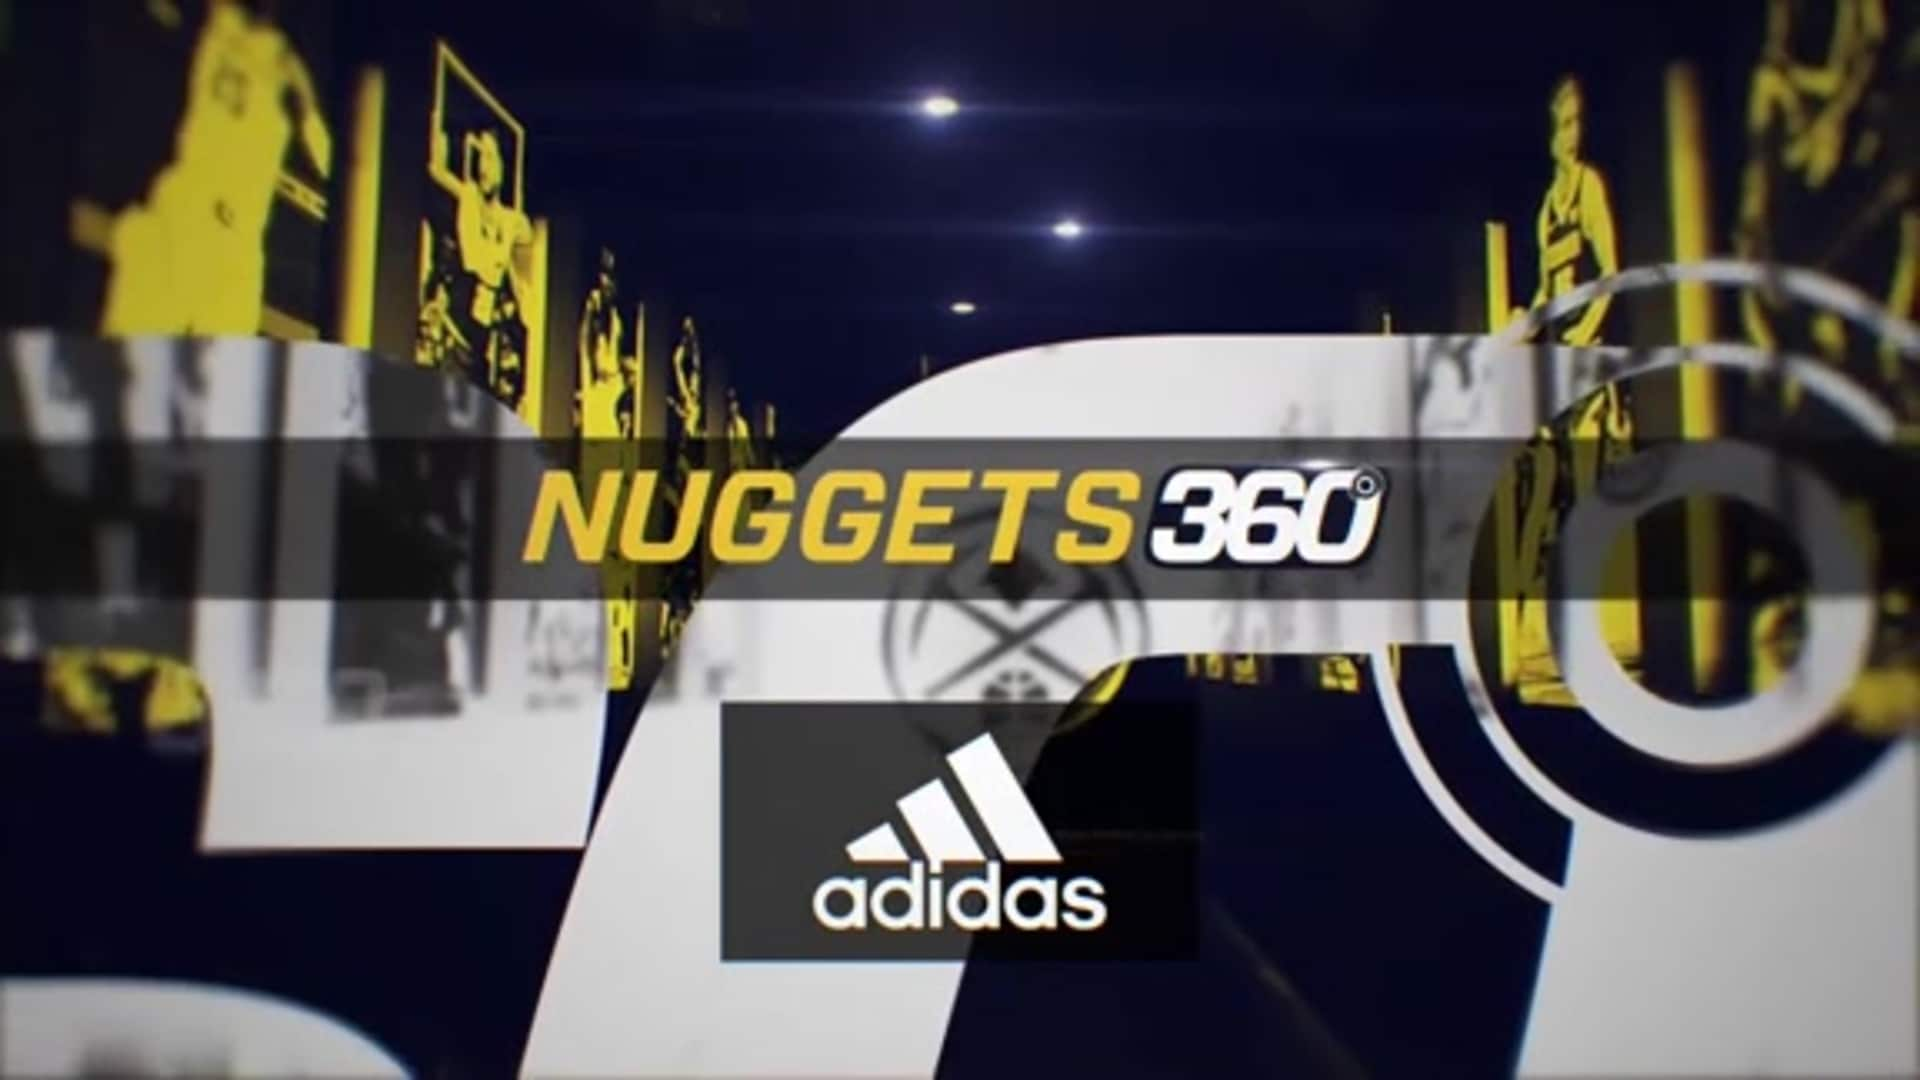 N360: Nuggets run a clinic at College View Rec Center